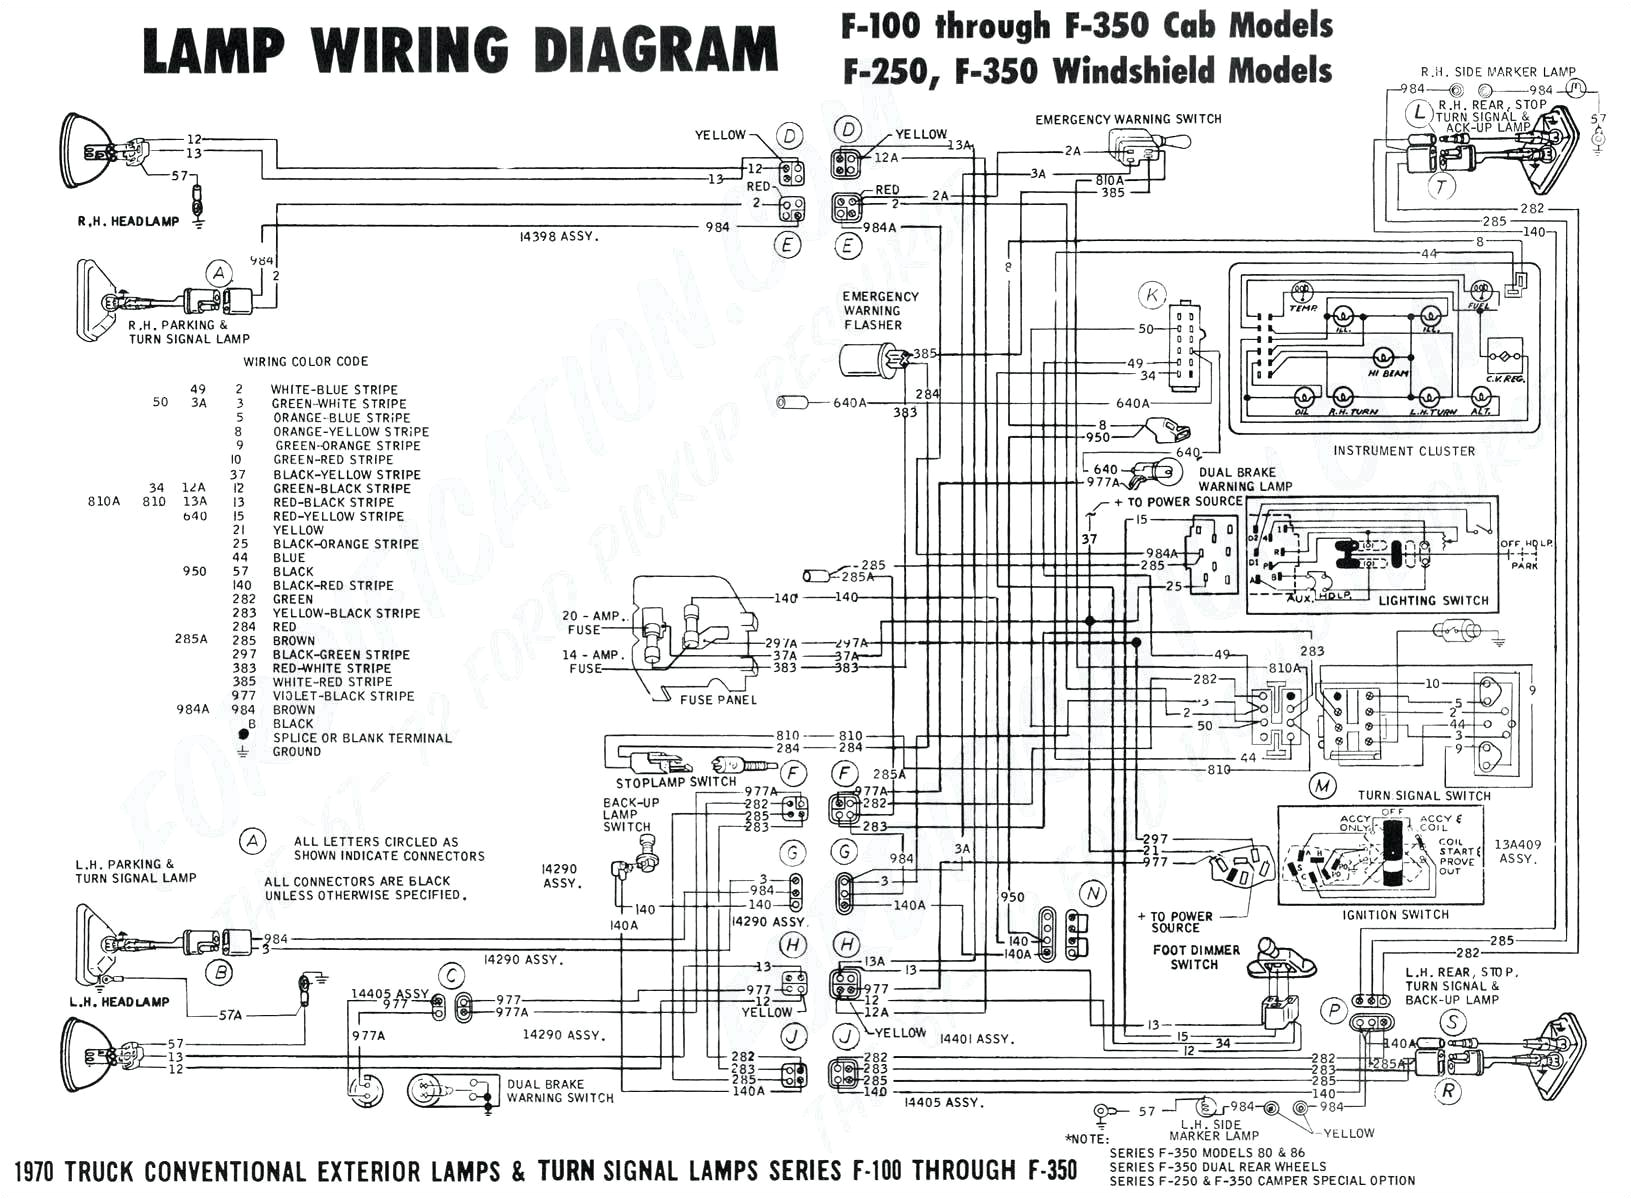 2008 ford Upfitter Switches Wiring Diagram 2014 ford F350 Wiring Diagram Schema Diagram Database